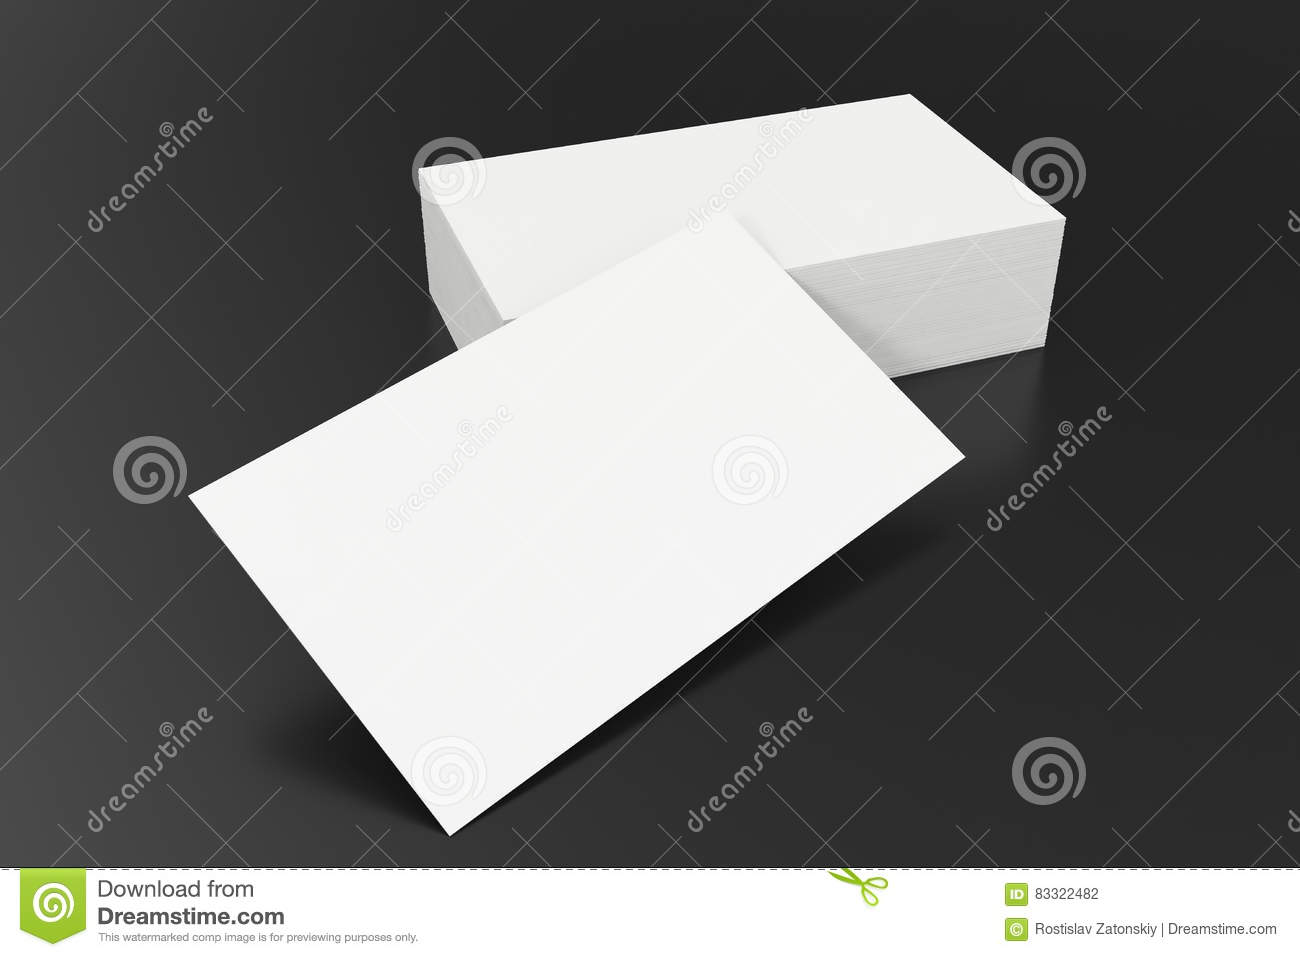 Business cards blank mockup template on balck background 3d download business cards blank mockup template on balck background 3d rendering stock photo flashek